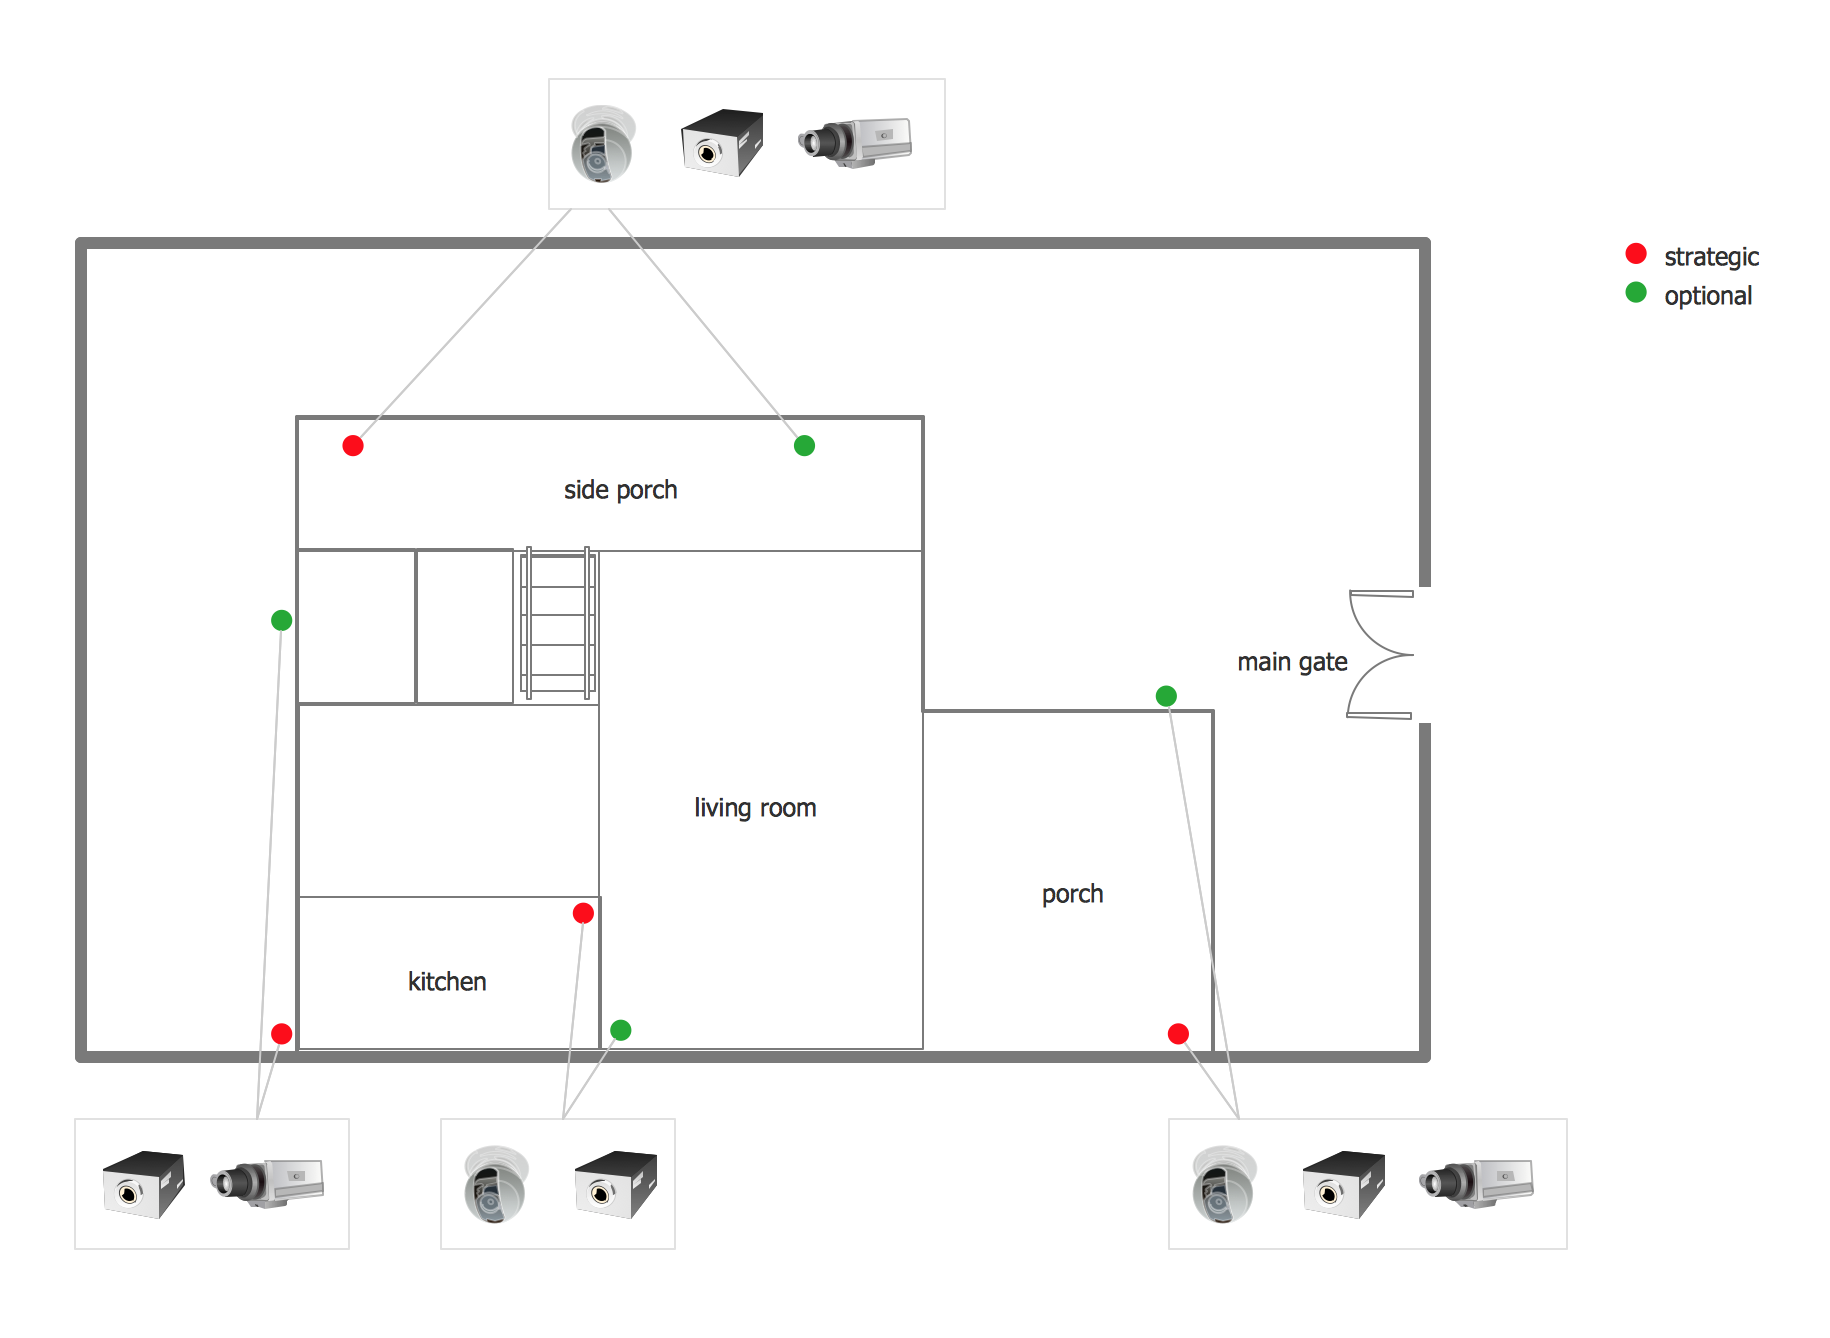 how to create cctv network diagram home cctv system